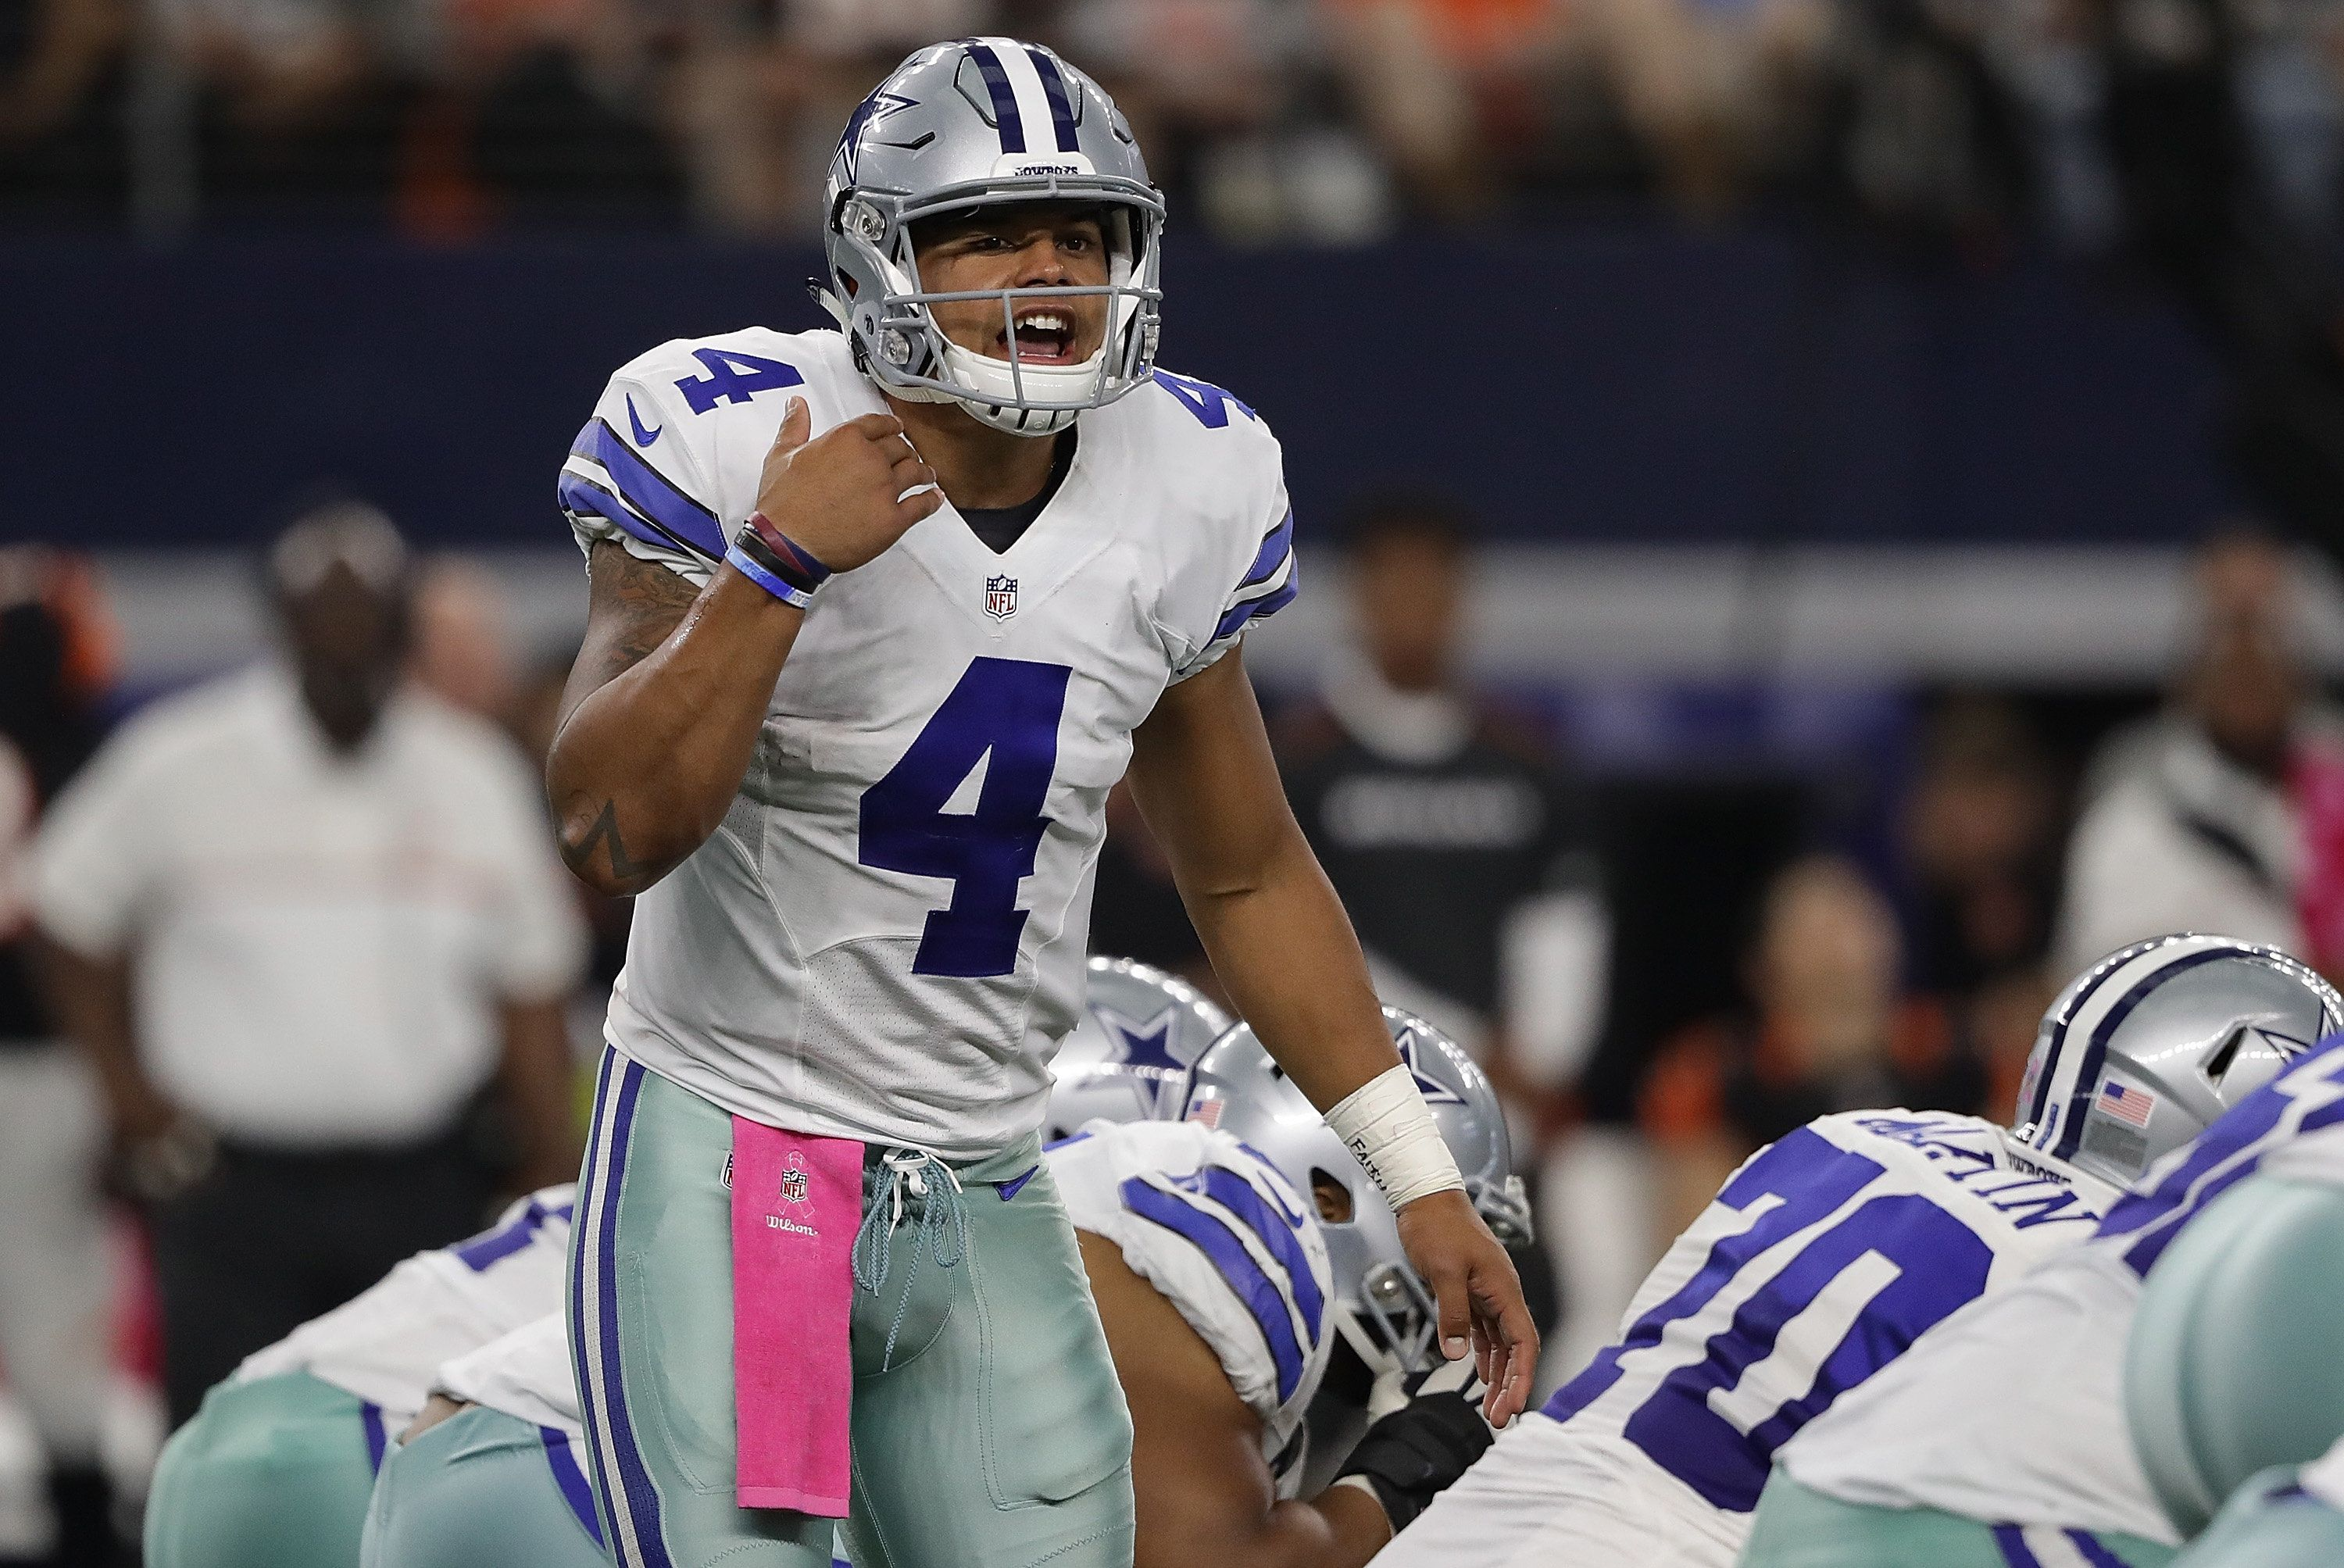 ARLINGTON, TX - OCTOBER 09:  Dak Prescott #4 of the Dallas Cowboys at AT&T Stadium on October 9, 2016 in Arlington, Texas.  (Photo by Ronald Martinez/Getty Images)